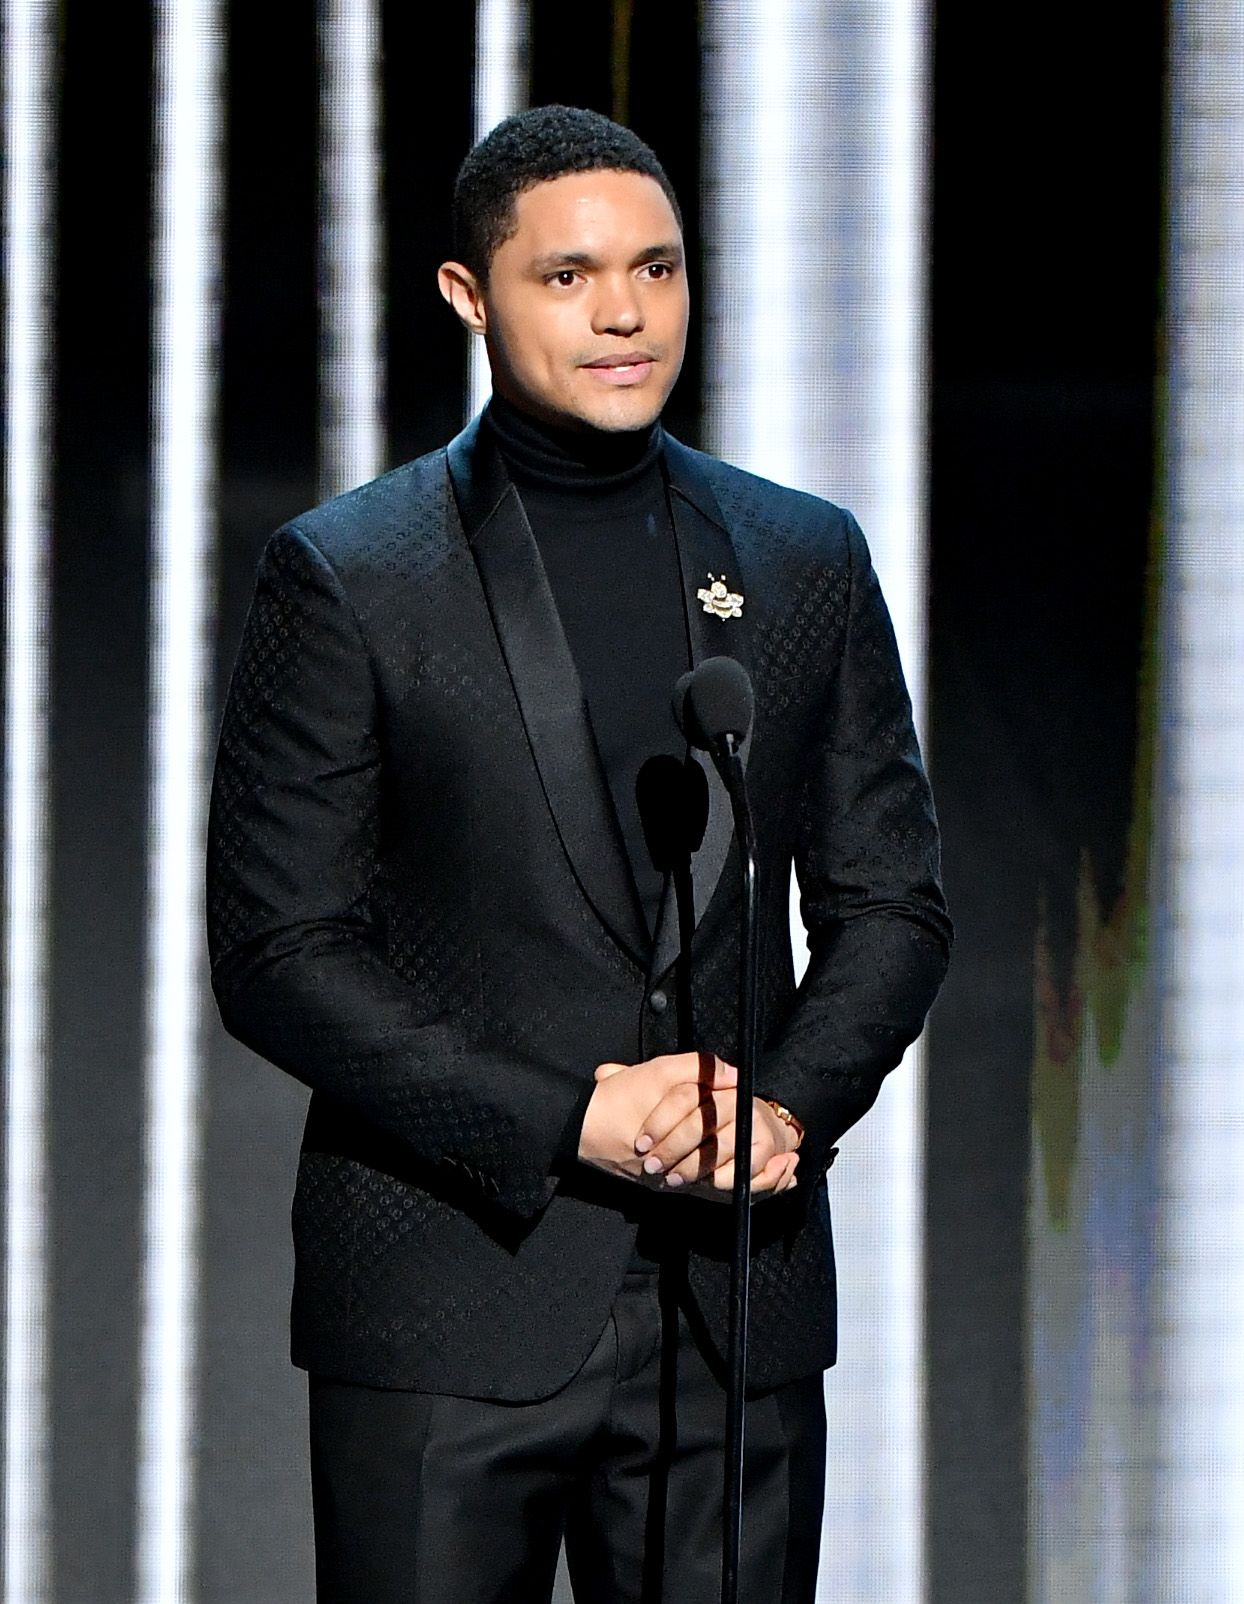 Trevor Noah during the 50th NAACP Image Awards at Dolby Theatre on March 30, 2019 in Hollywood, California. | Source: Getty Images